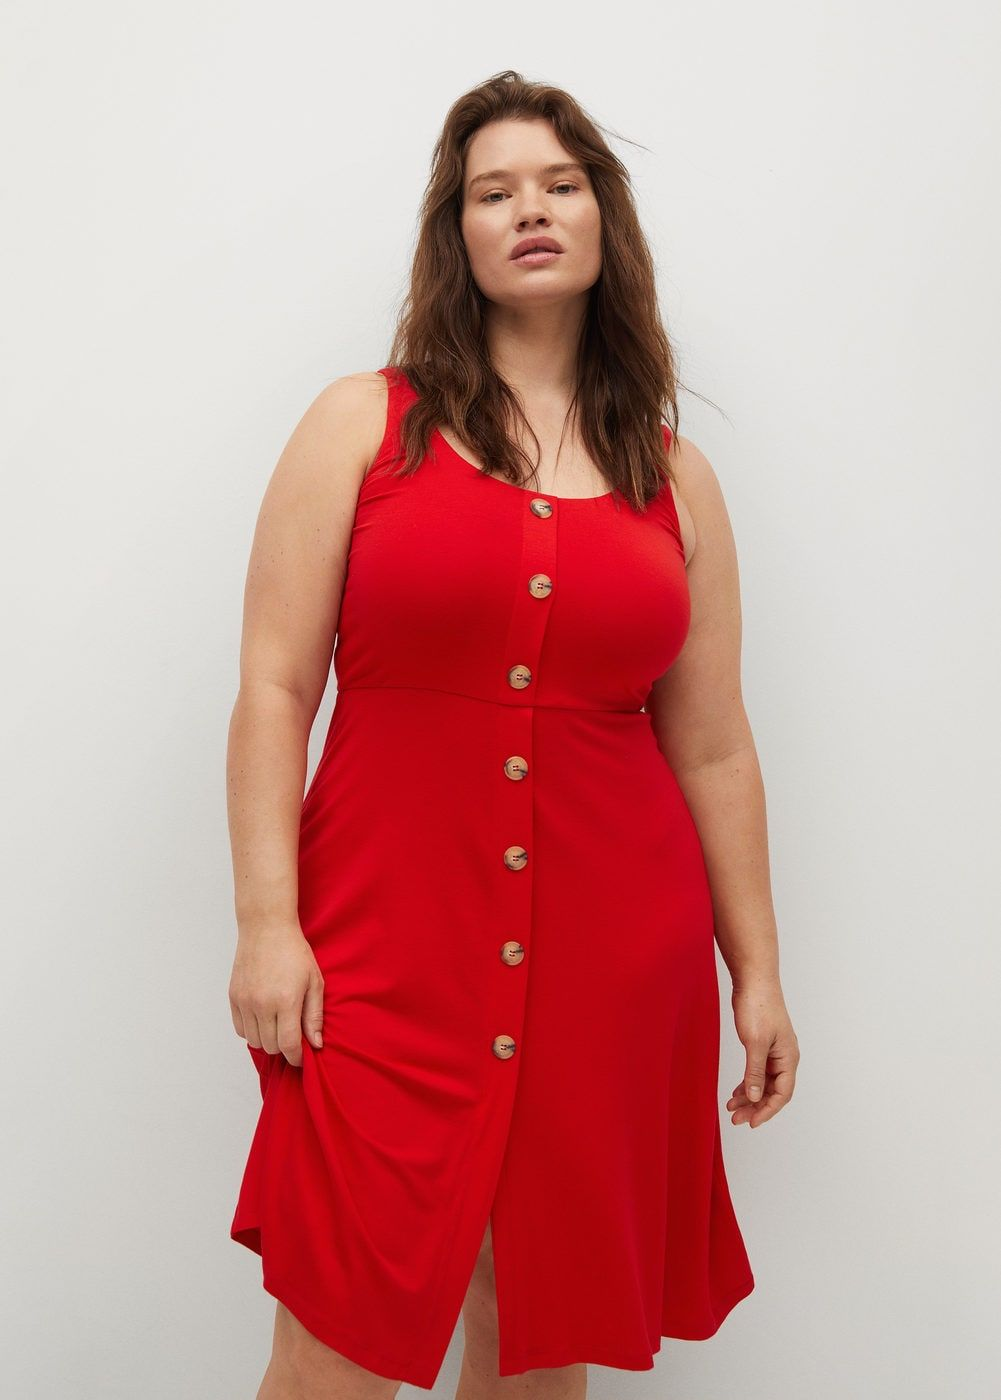 28 Casual Red Dresses Under $100 That I'm Obsessed With - casual red dresses 293971 1624940065894